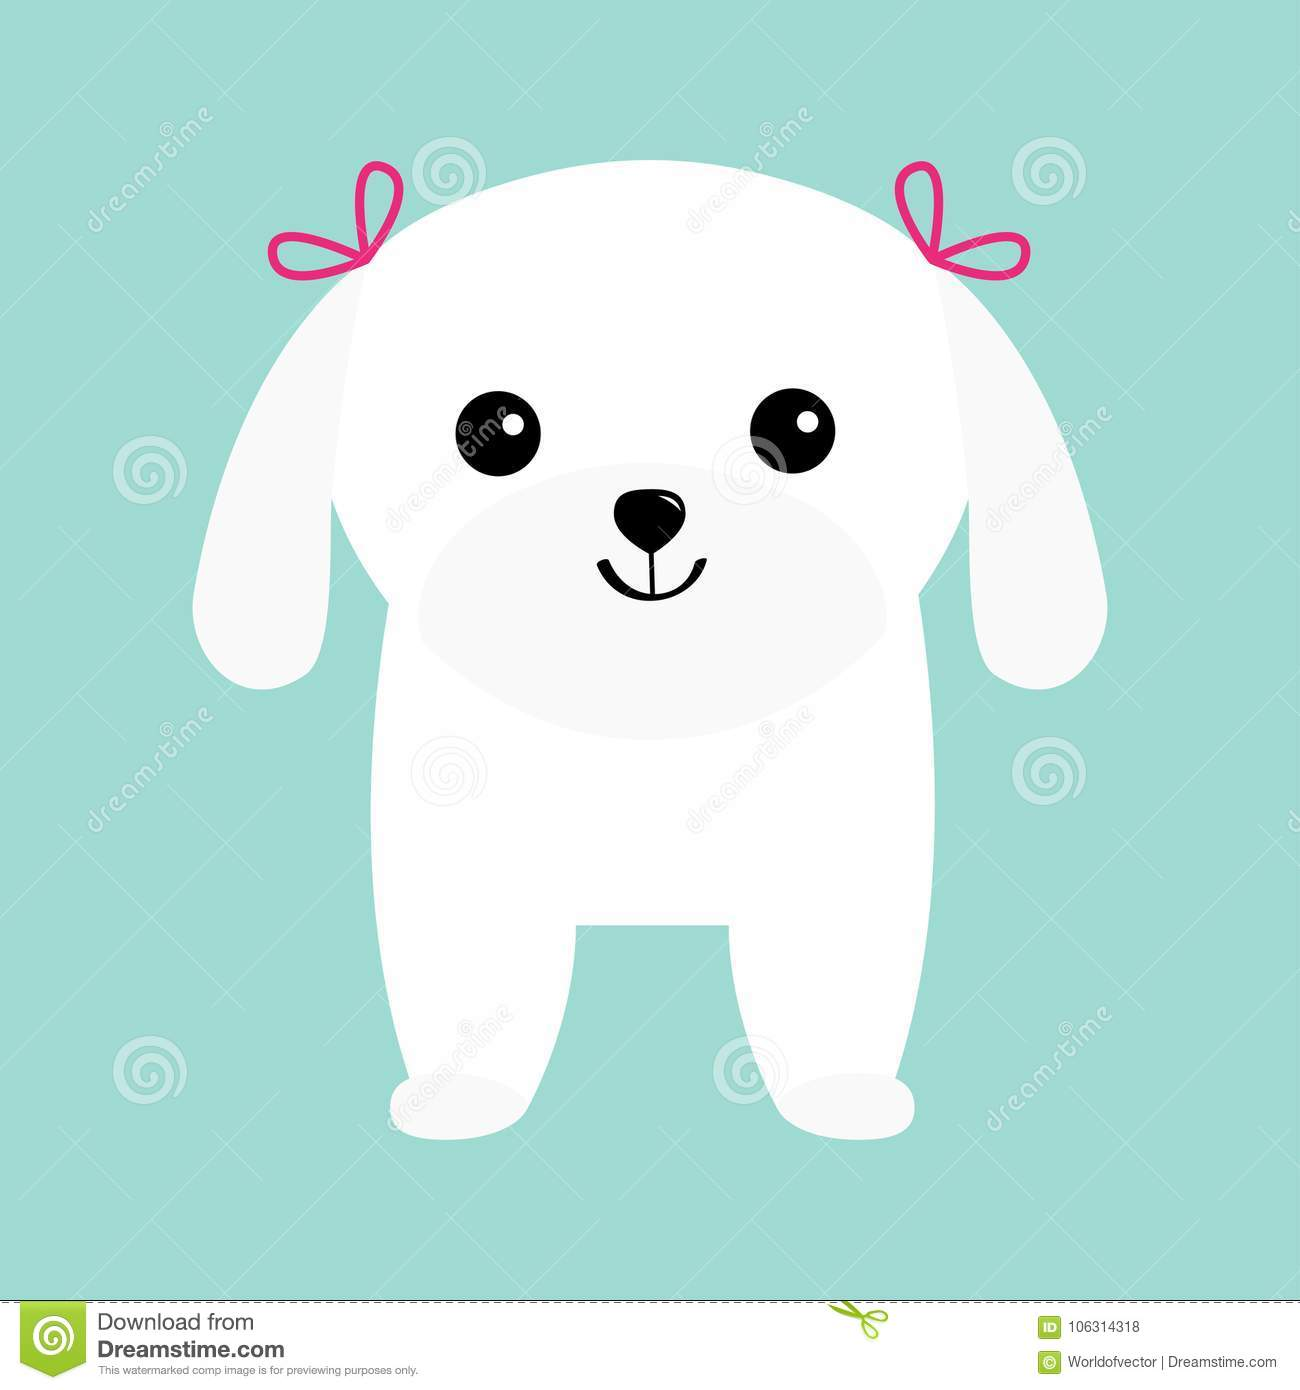 Maltese dog puppy White lapdog. Animal icon set. Cute cartoon character. Pet animal collection. Adopt concept. Flat design. Blue b